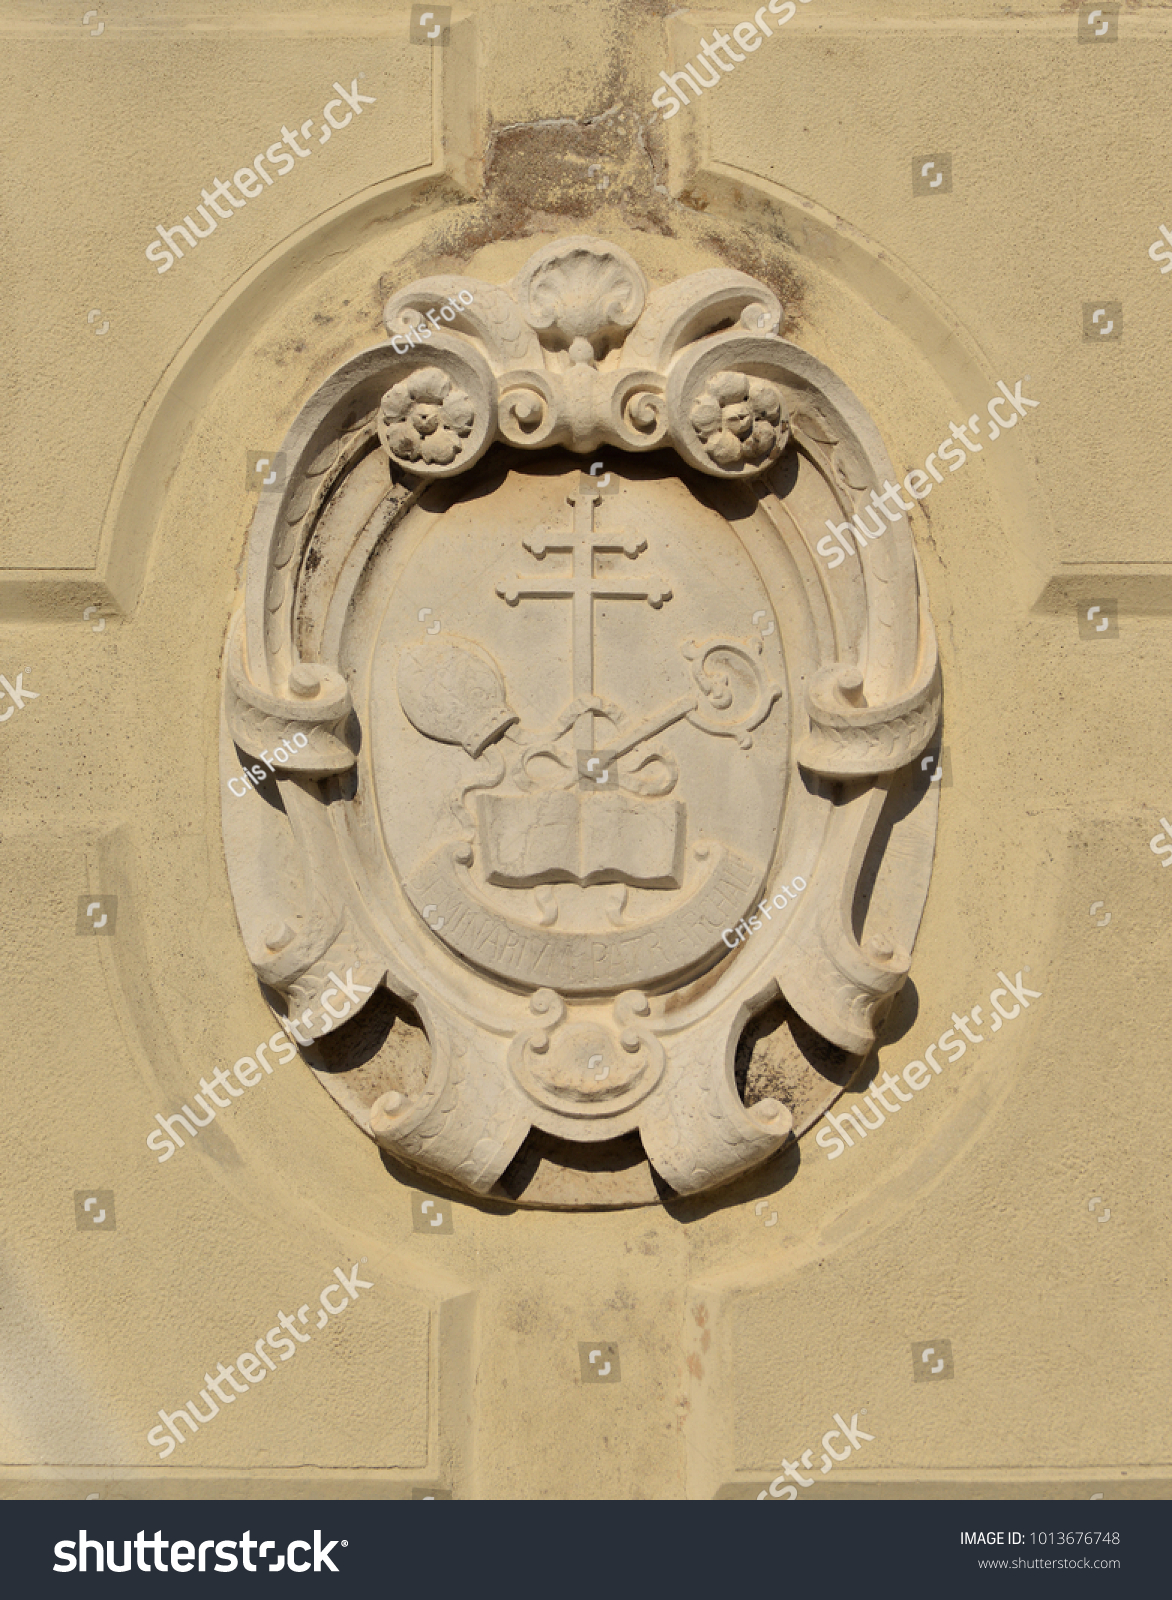 Cross Crosier And Mitre Christian Religious Symbols Old Relief On